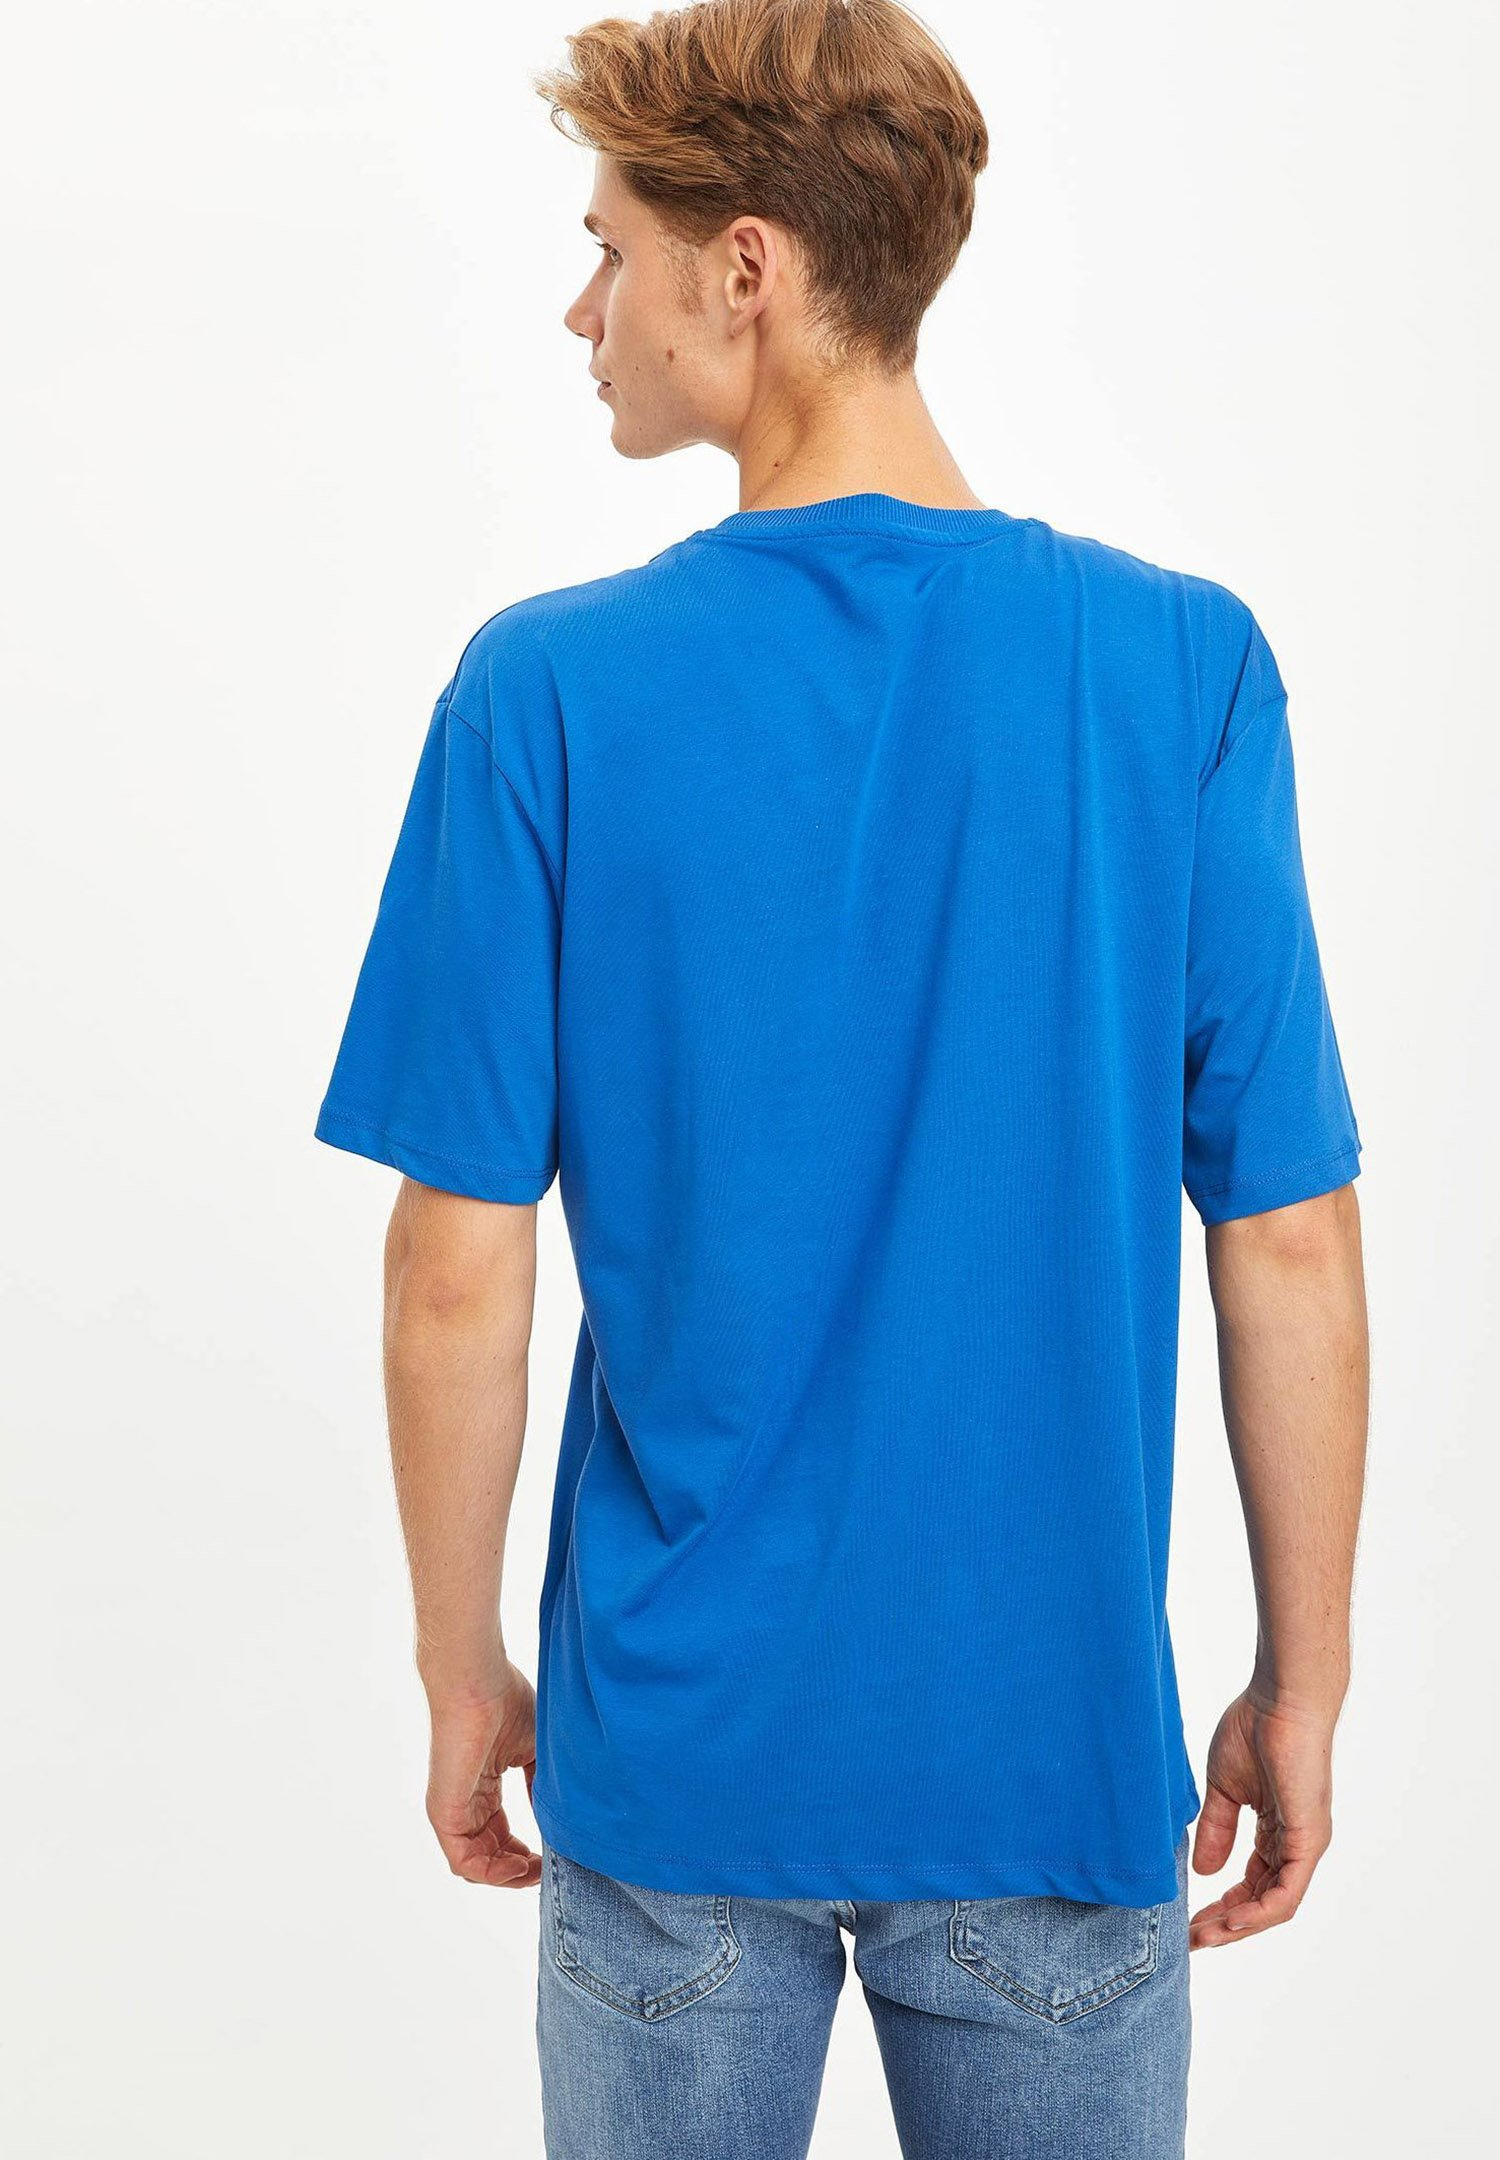 DeFacto Print T-shirt - blue NO5NS